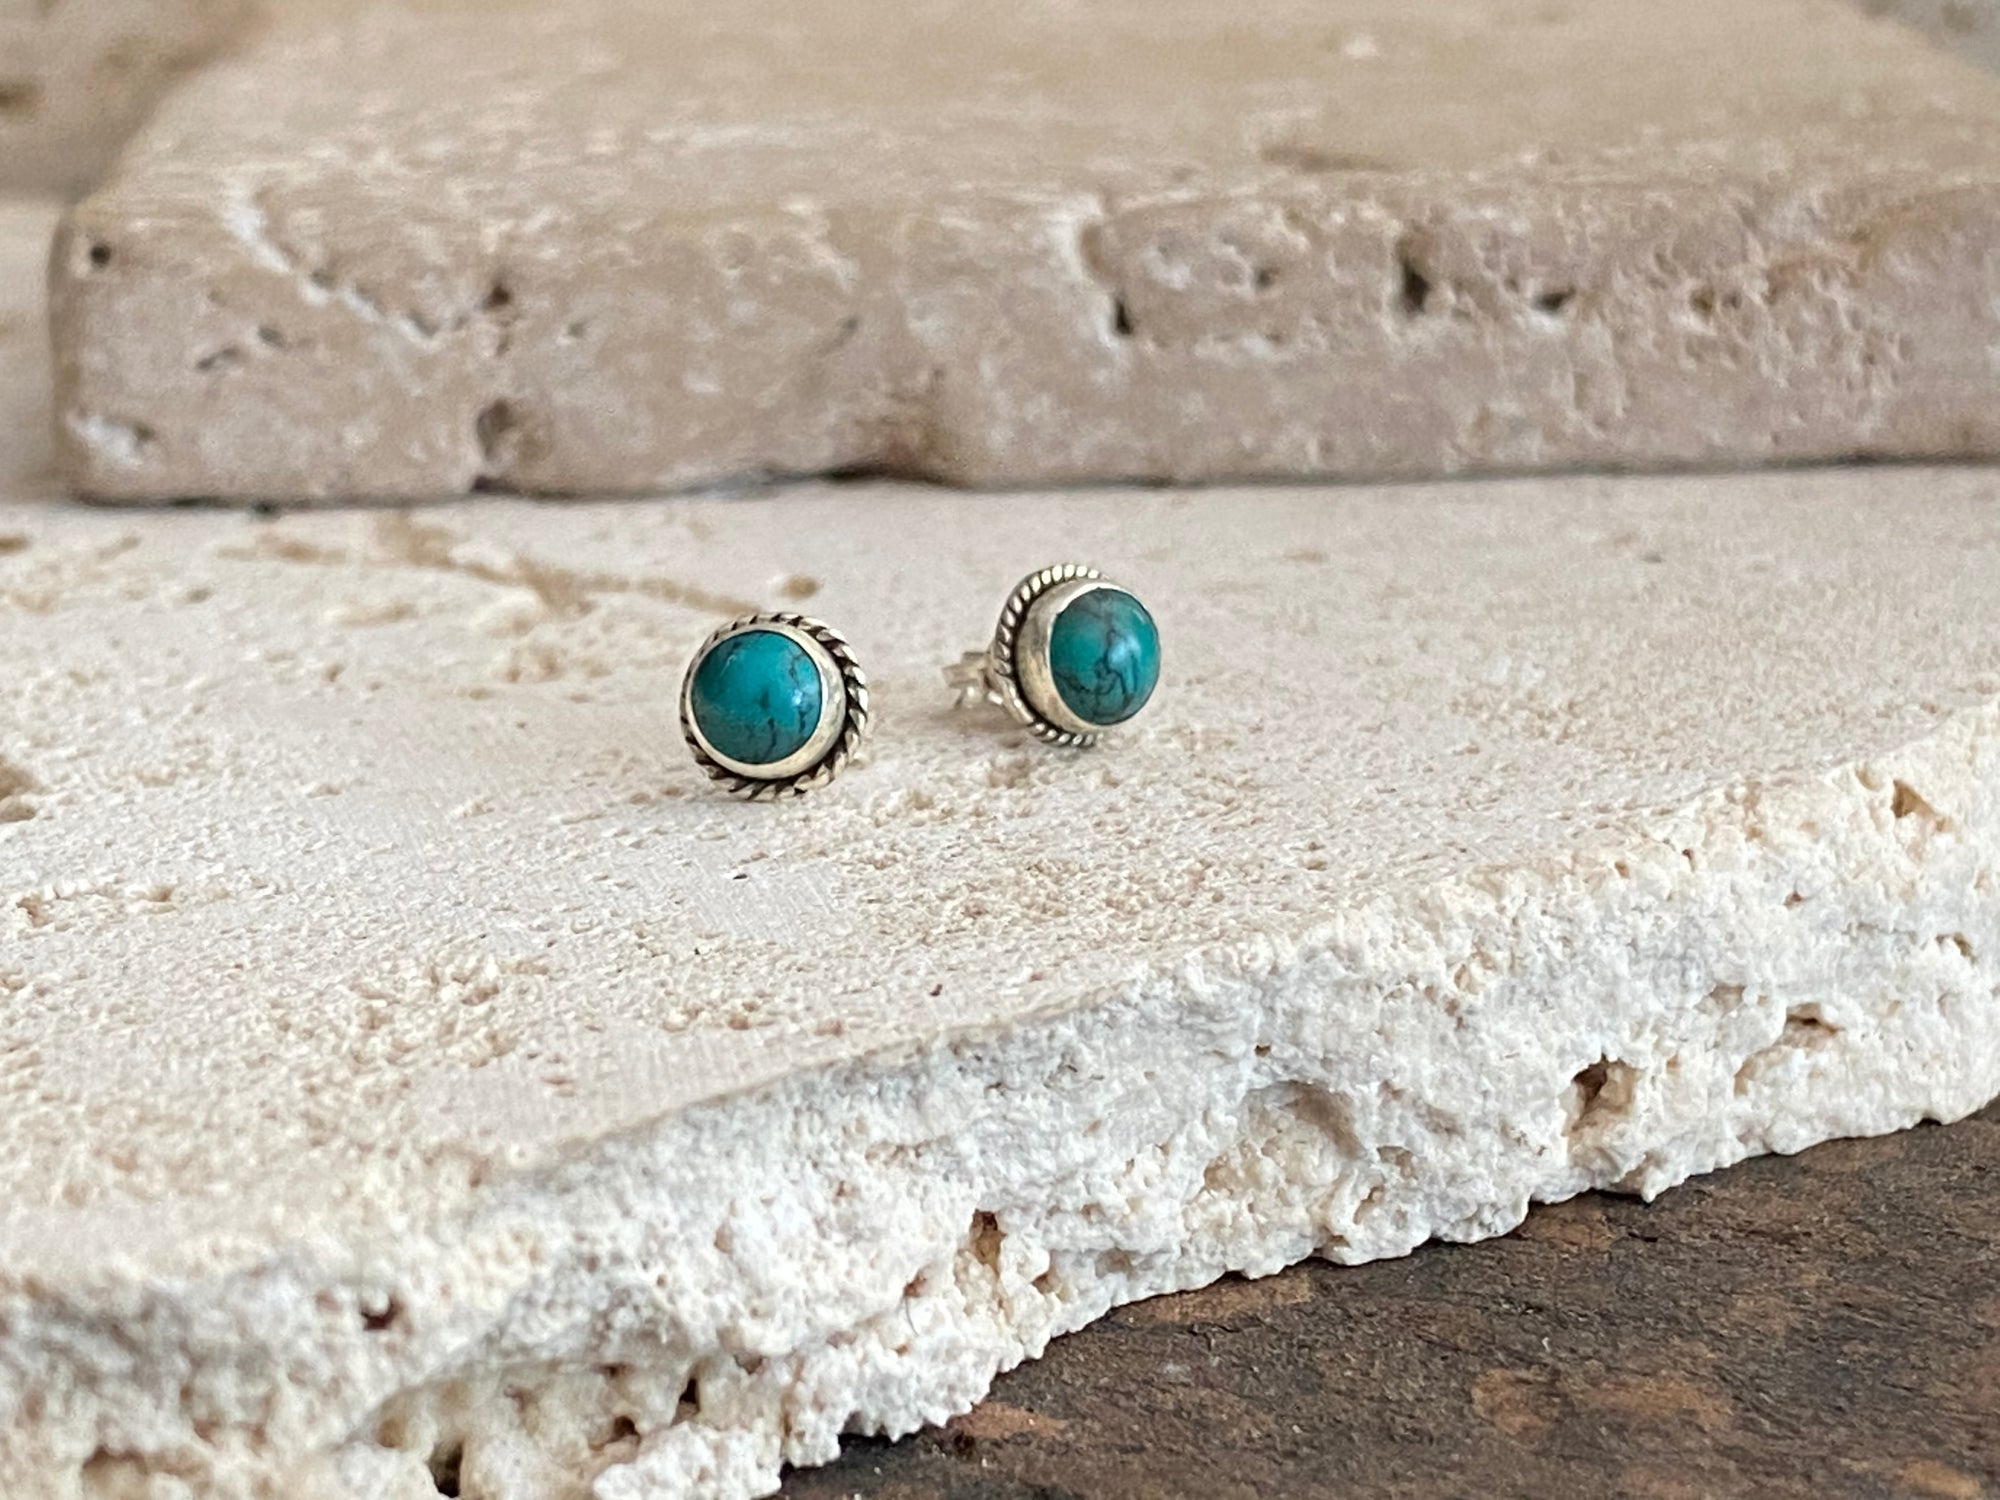 Turquoise stud earring with a twisted wire bezel. Sterling silver post and butterfly back